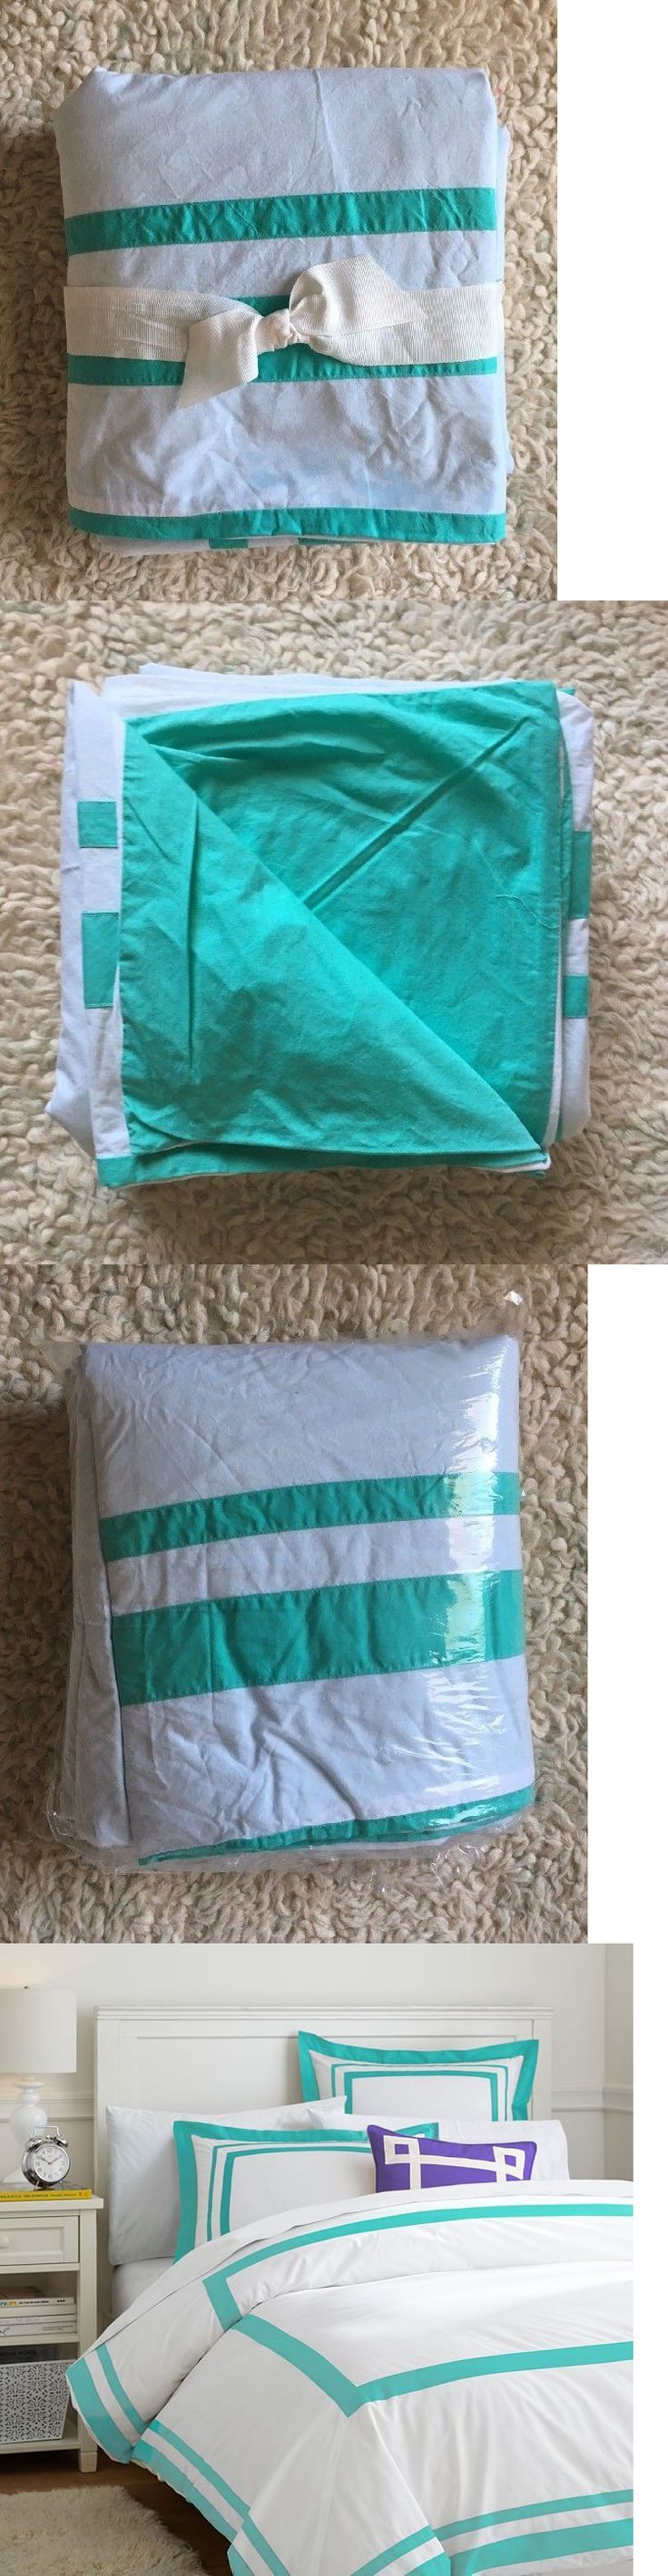 Kids Bedding: Pottery Barn Teen Suite Organic Duvet Full Queen Pool Teal Blue Green $129Msrp -> BUY IT NOW ONLY: $48.5 on eBay!